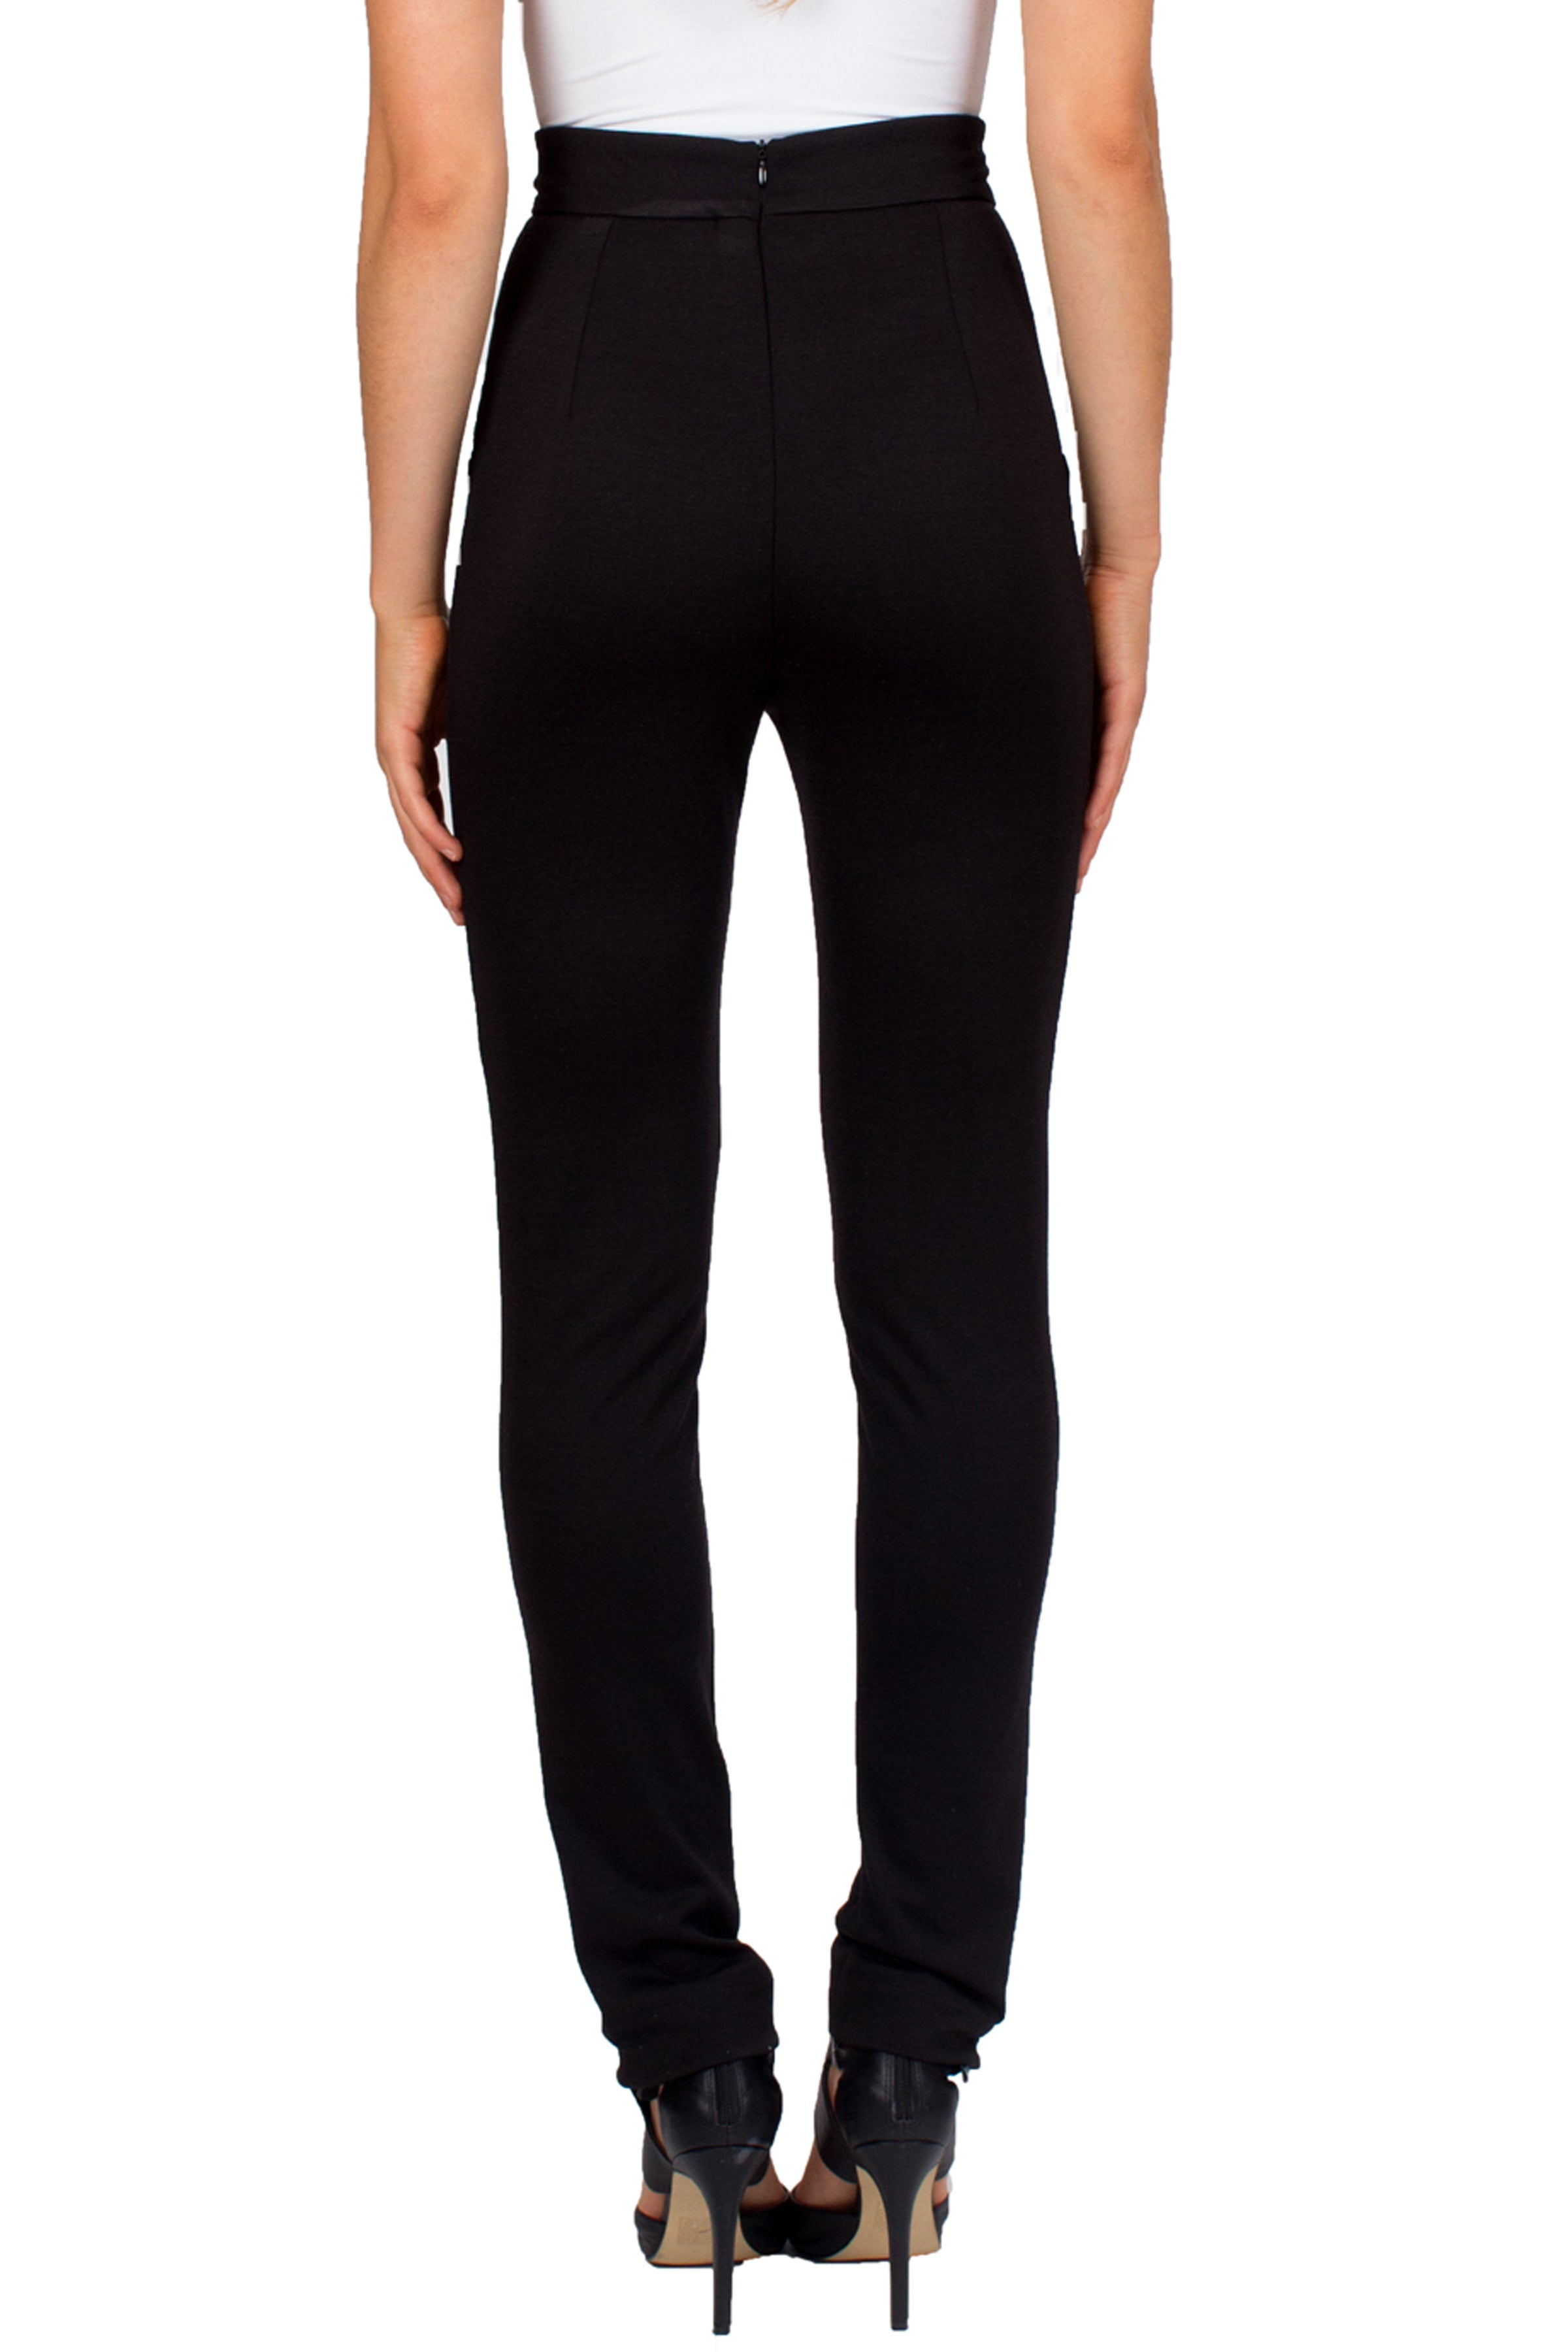 High Waisted Black Pants With Leather Insets - Tetiana K - 3